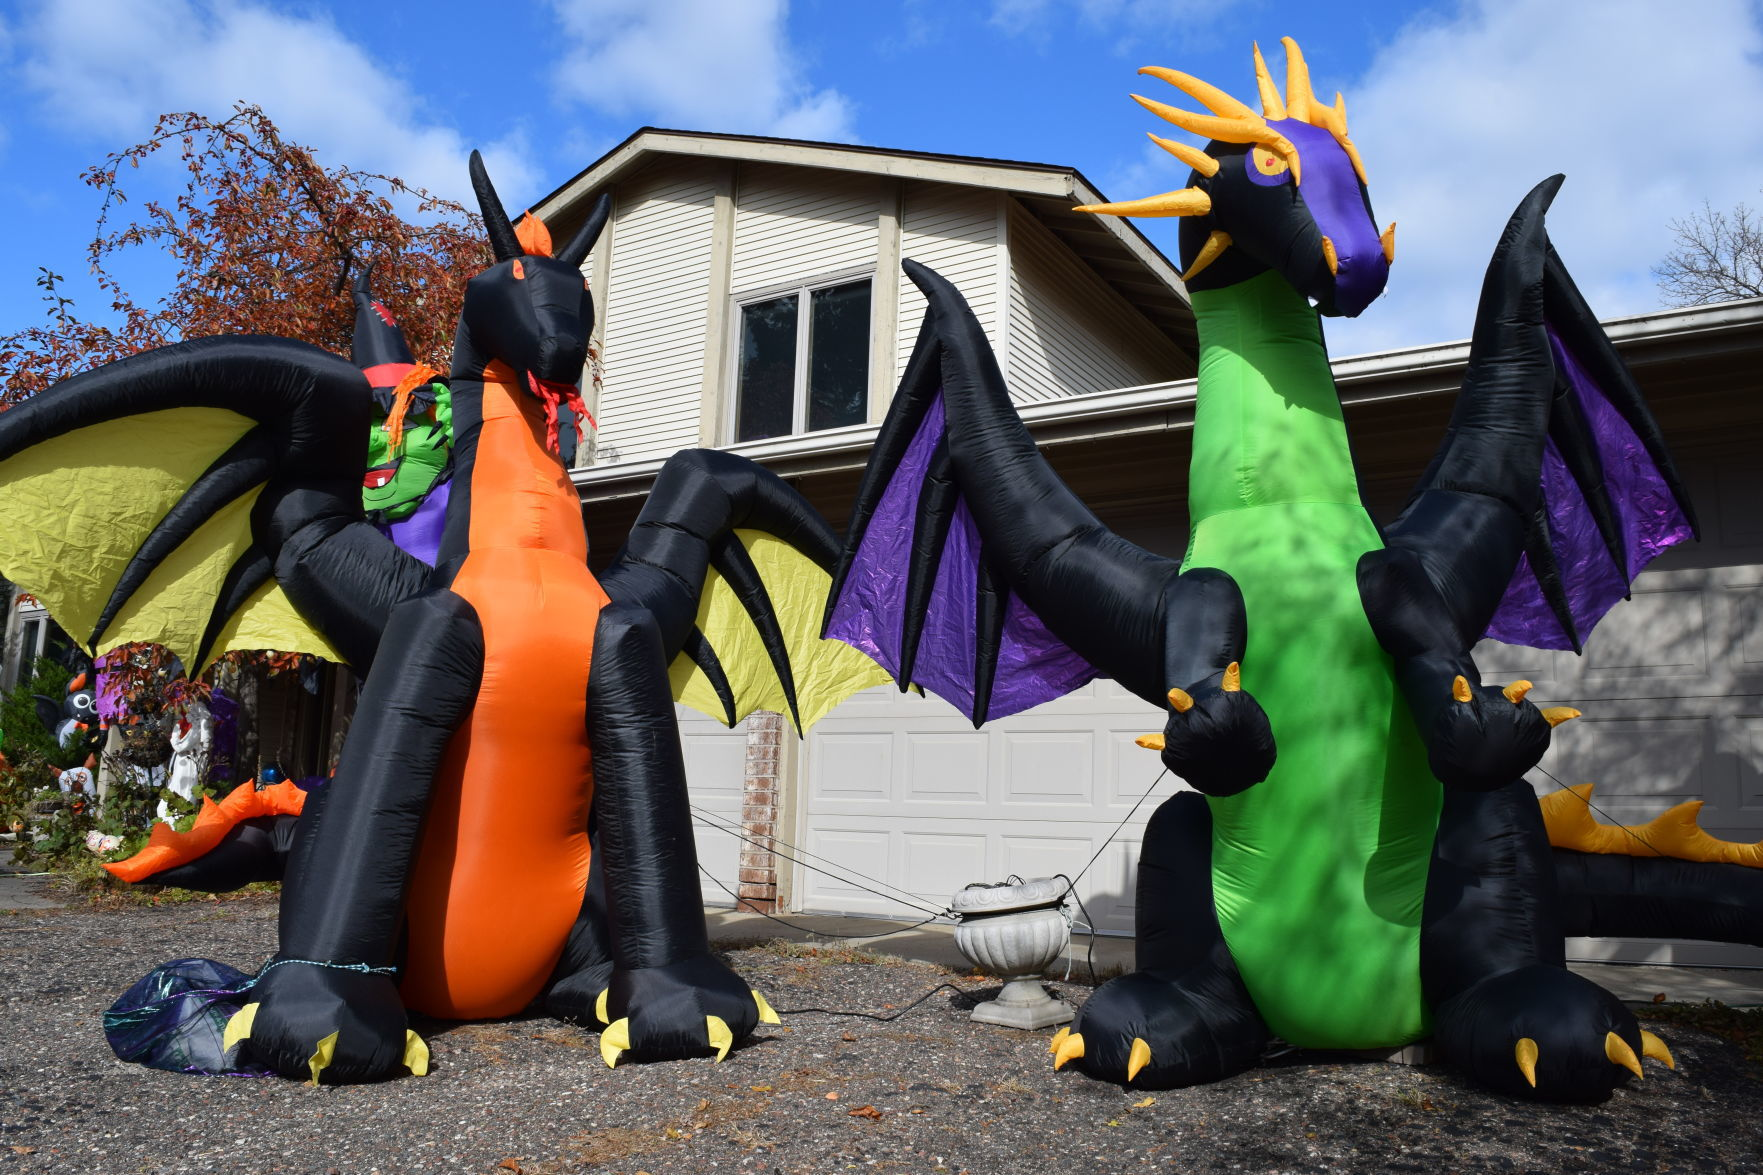 More Is More Nearly 100 Inflatable Halloween Decorations Bring Whimsy And Joy To Eden Prairie Yard Swnewsmedia Com